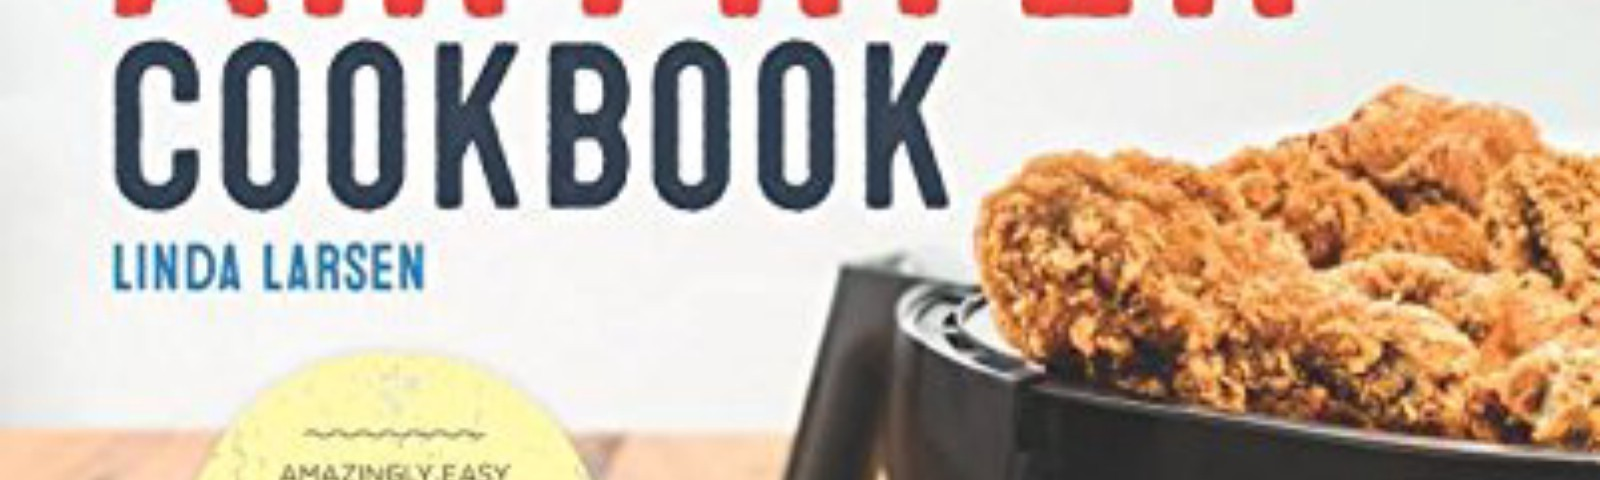 The Complete air fryer cookbooks Amazingly Easy Recipes to Fry, Bake, Grill, and Roast with Your Air Fryer